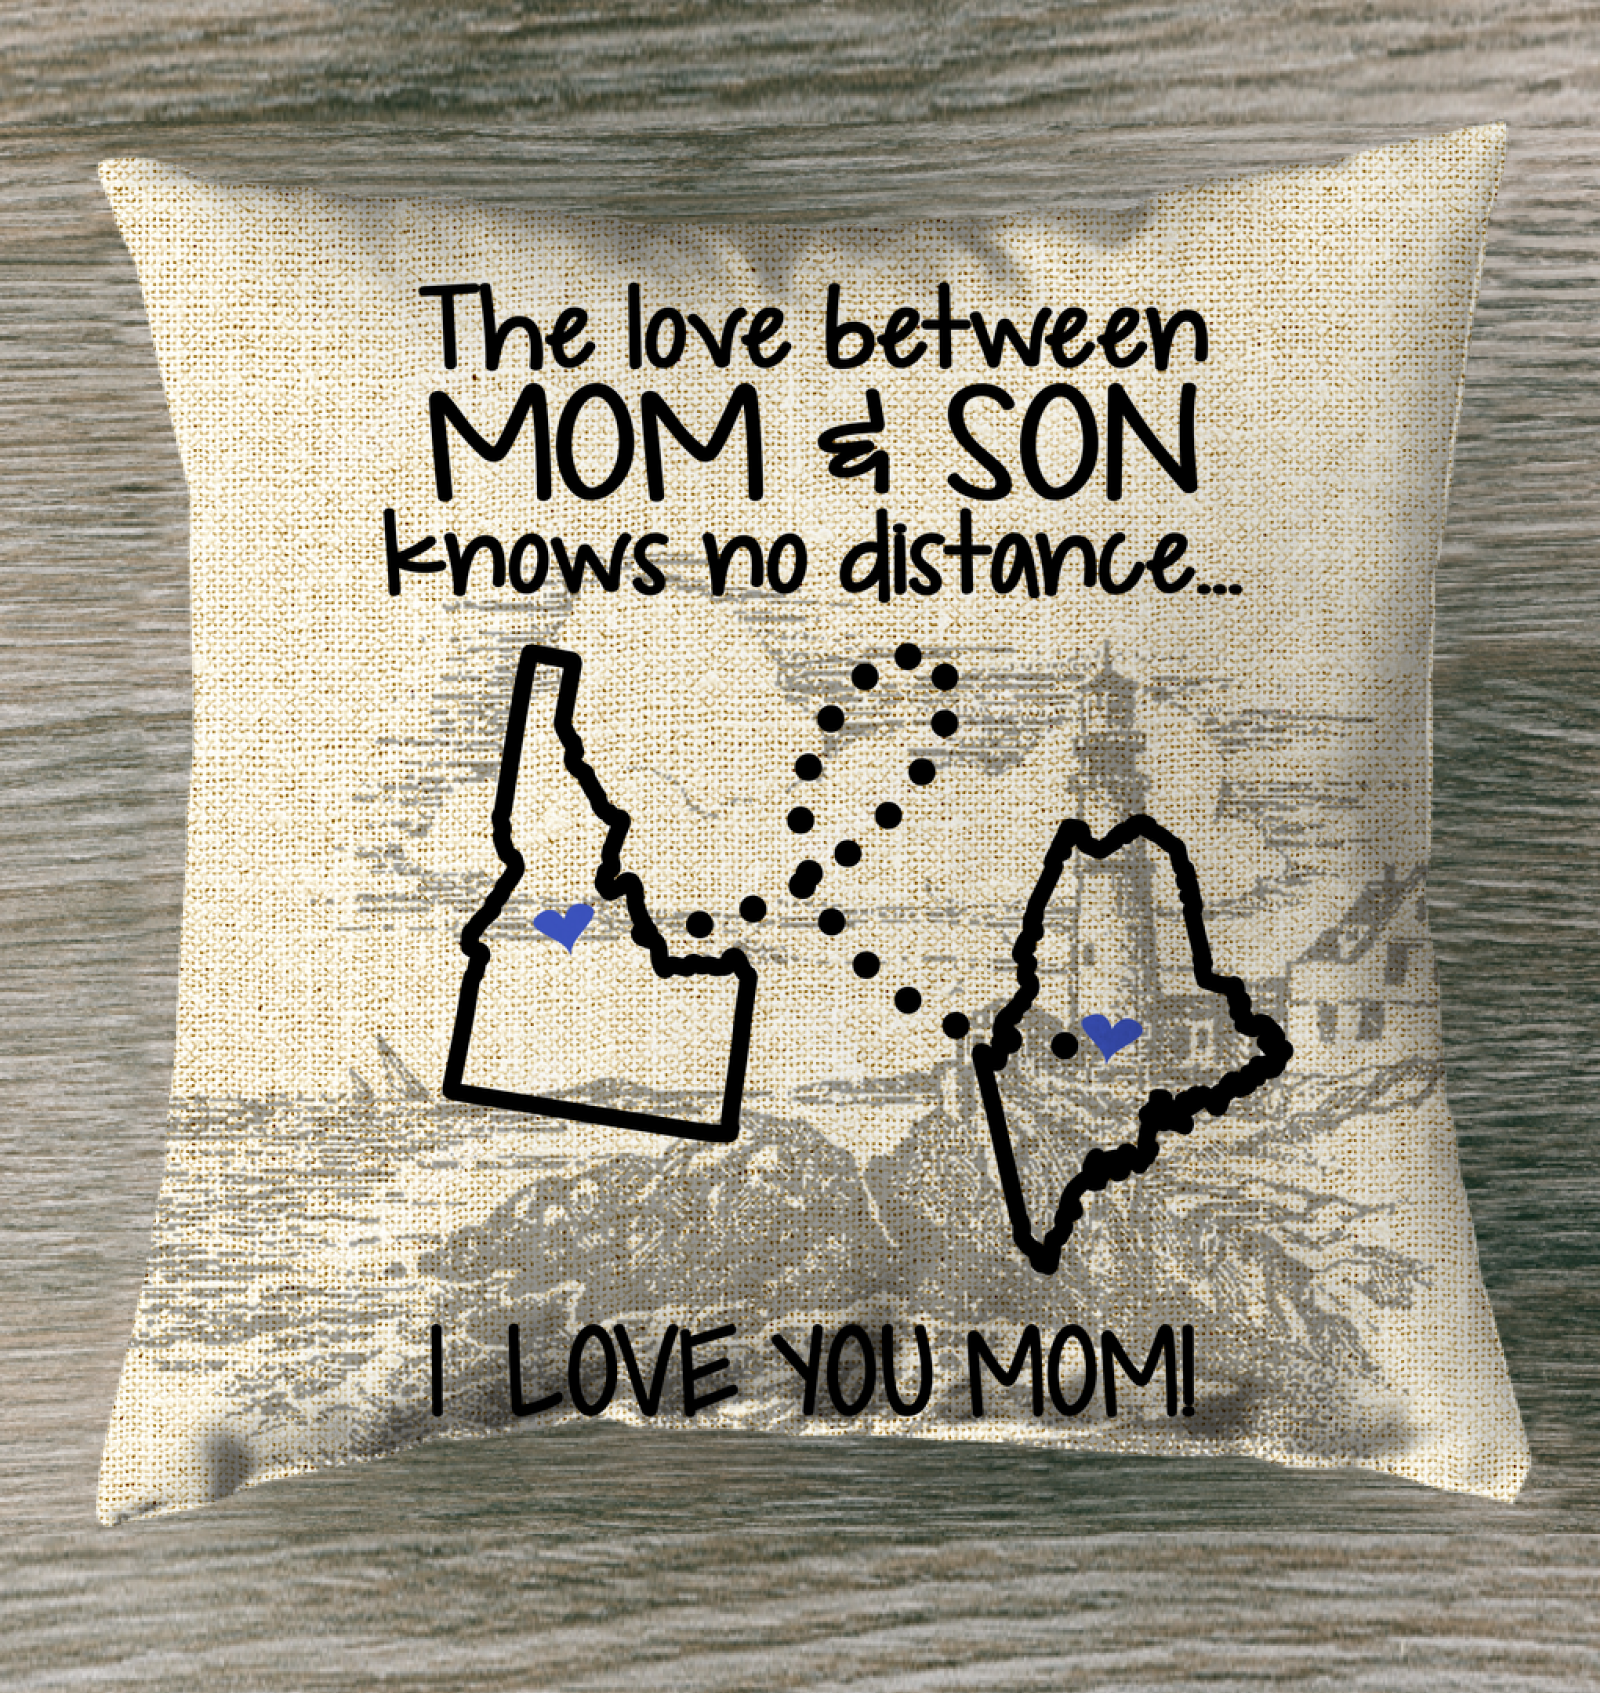 MAINE IDAHO THE LOVE BETWEEN MOM AND SON